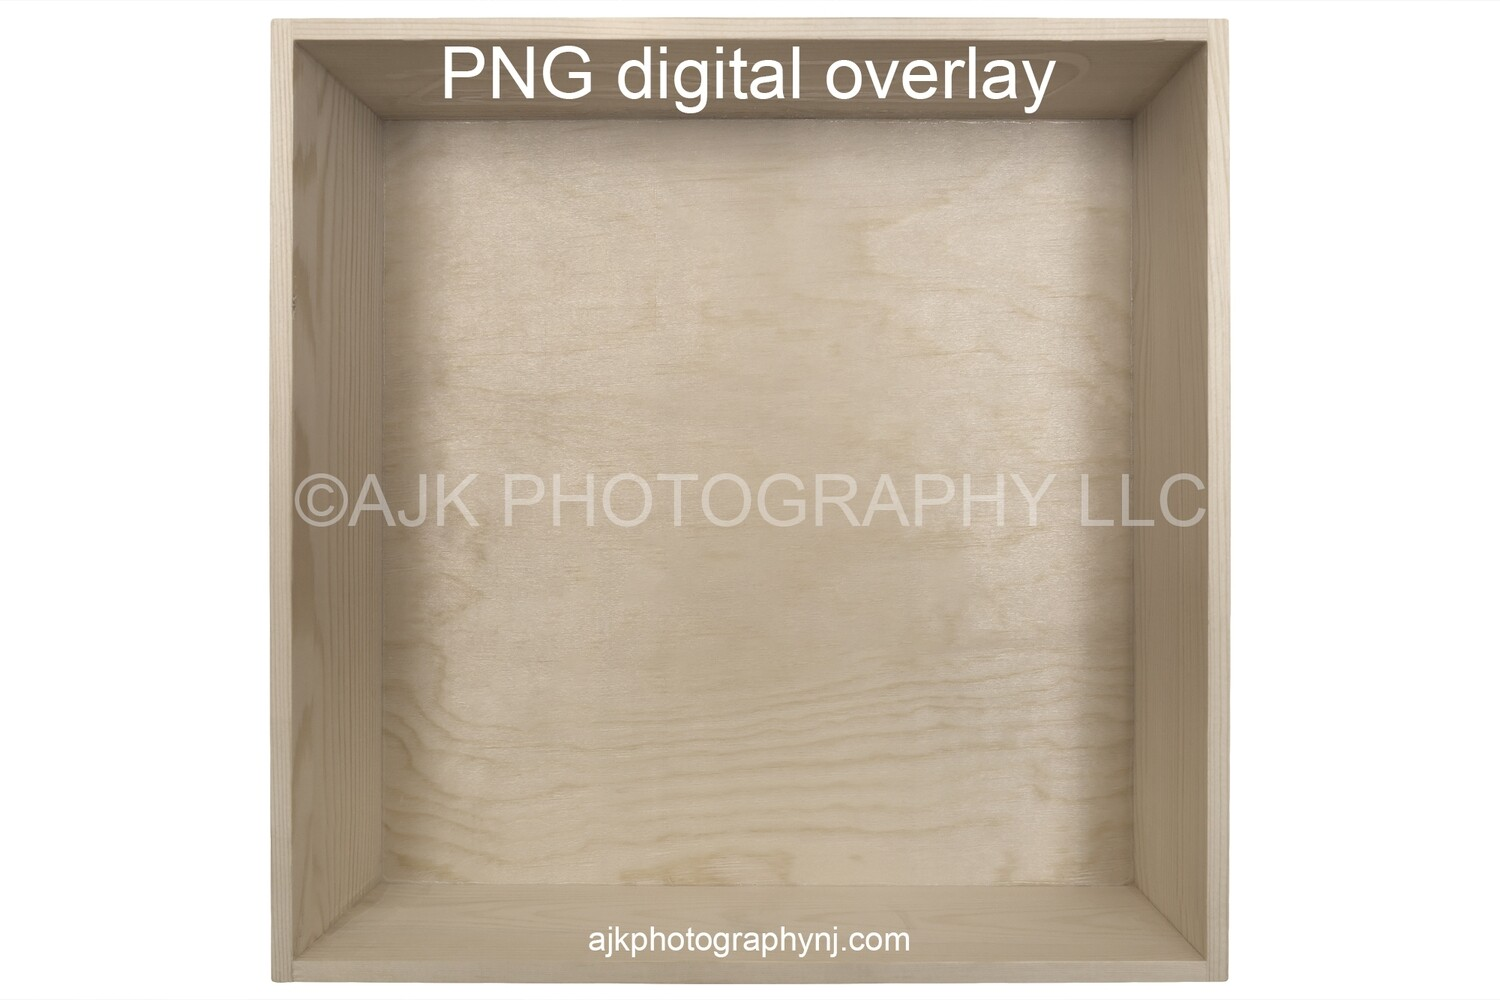 1 empty wood box template, PNG digital overlay, photography composite